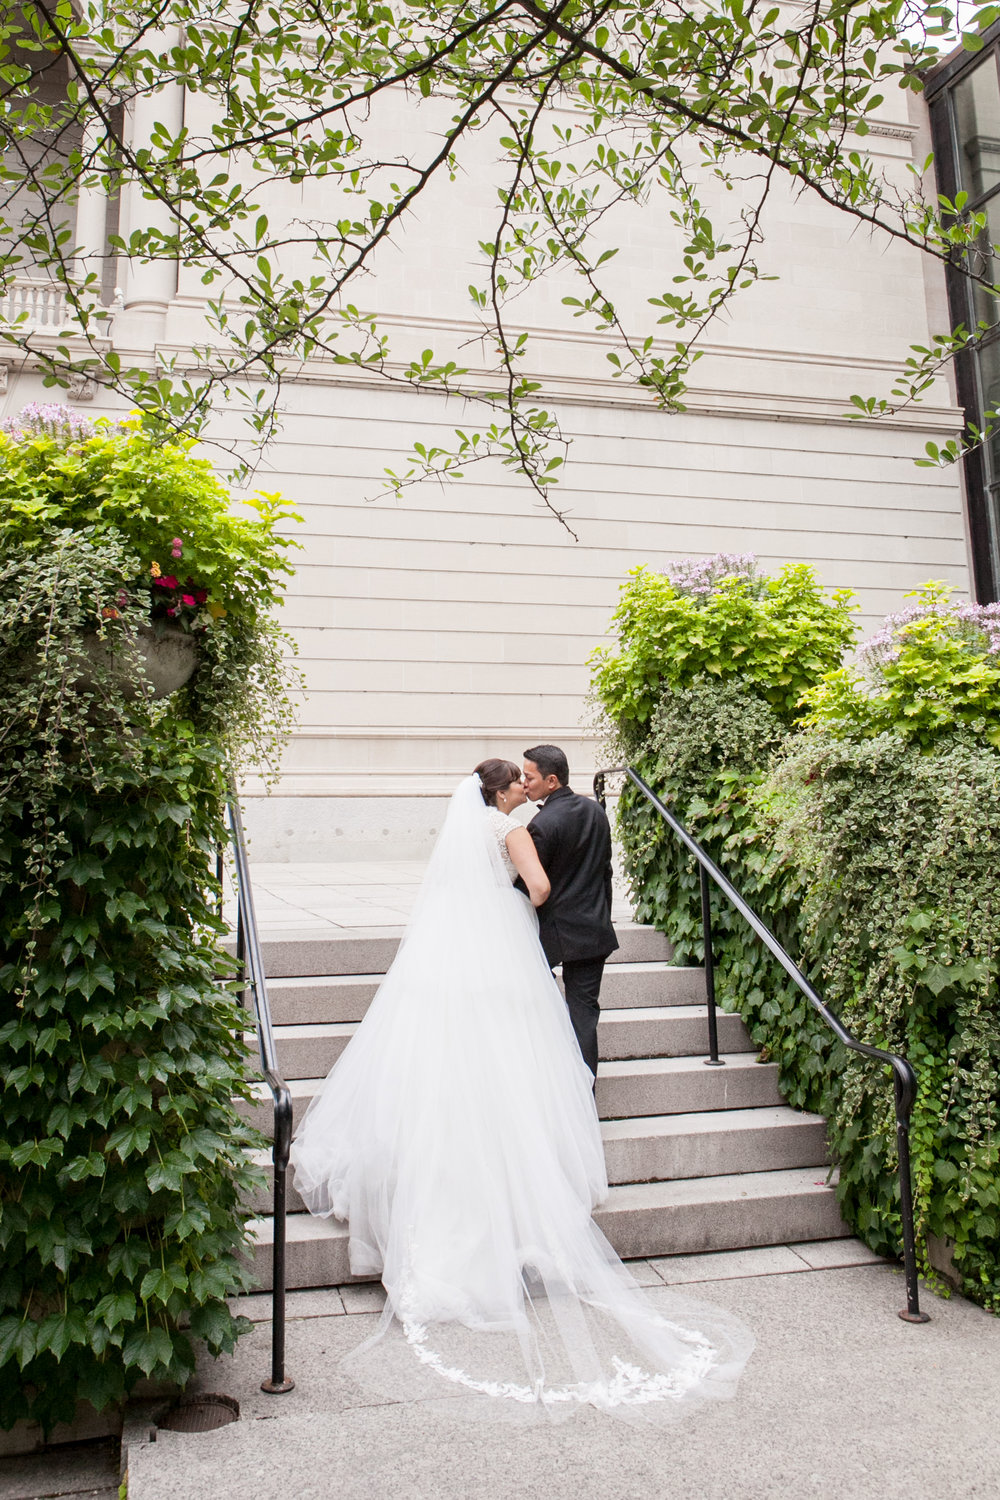 AnalisaRalphWedding_0580.jpg